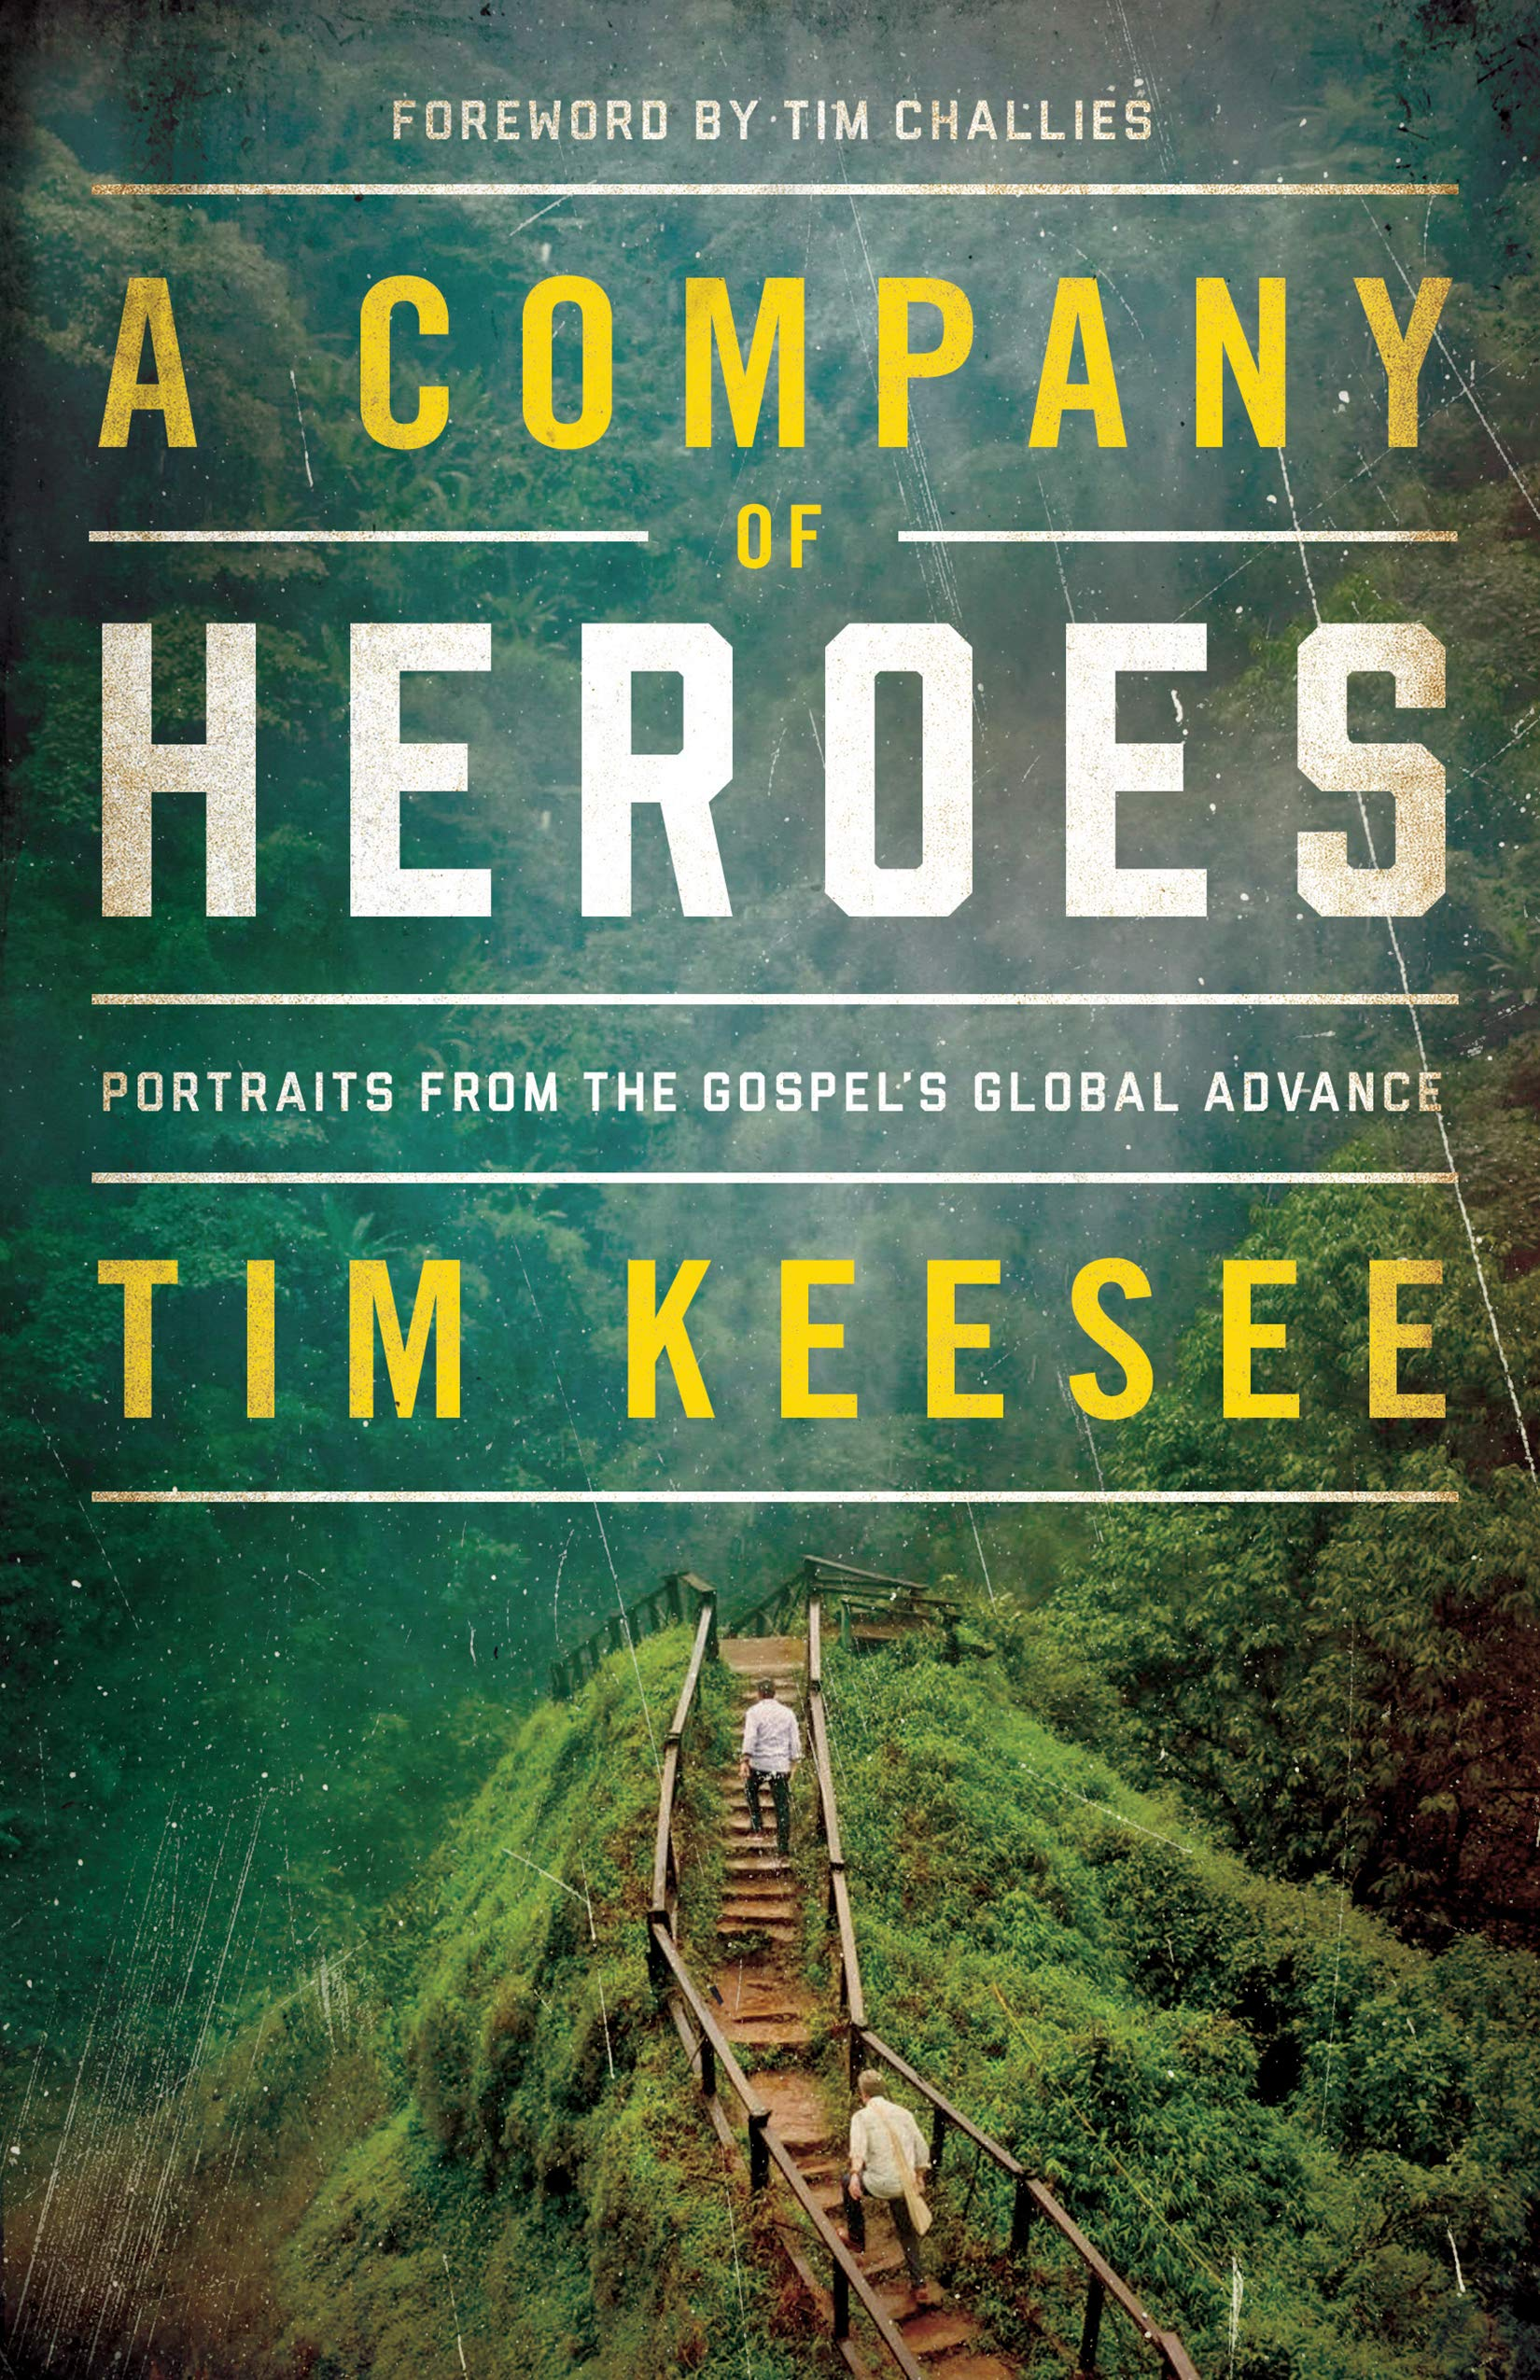 A Company Of Heroes Portraits From The Gospel S Global Advance Keesee Tim 9781433562570 Amazon Com Books